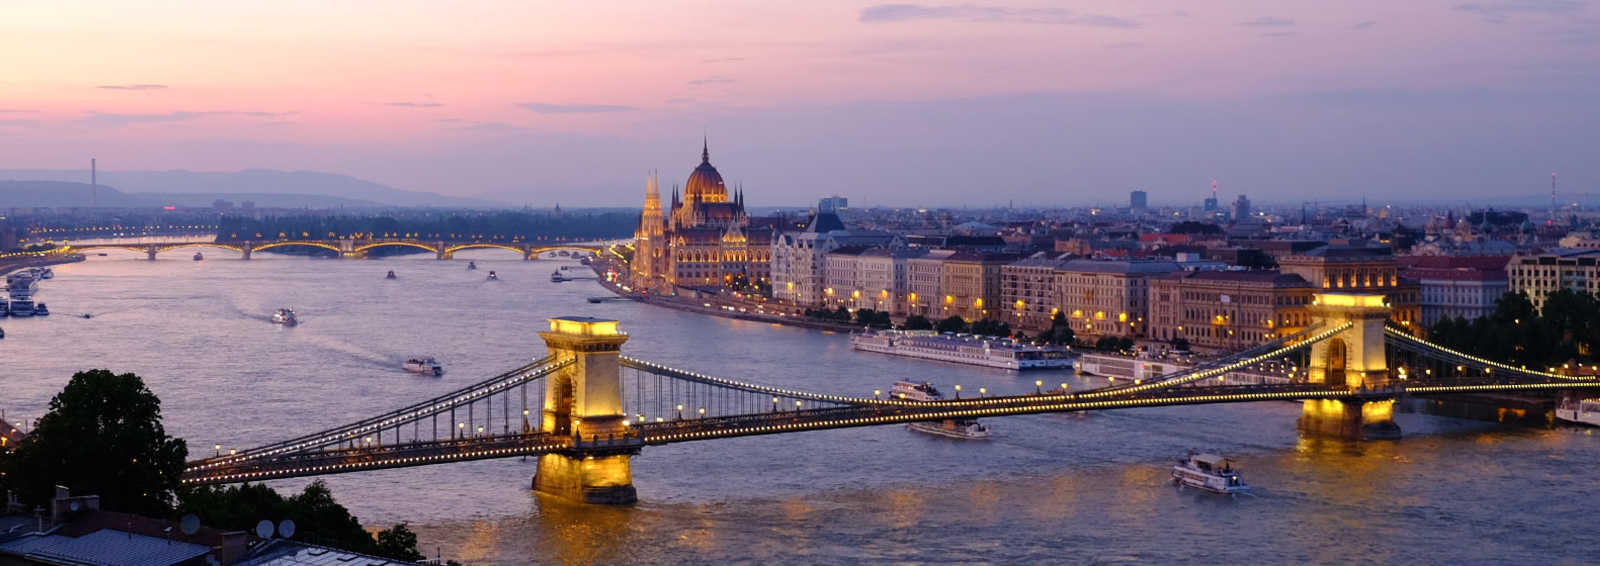 Budapest City at Night